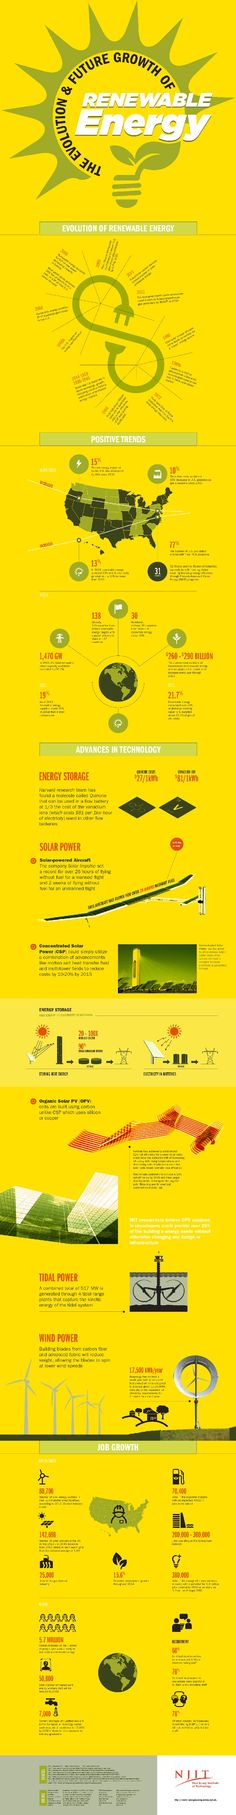 This infographic provides a look at exactly what it takes to live self-sufficiently entirely off the grid.